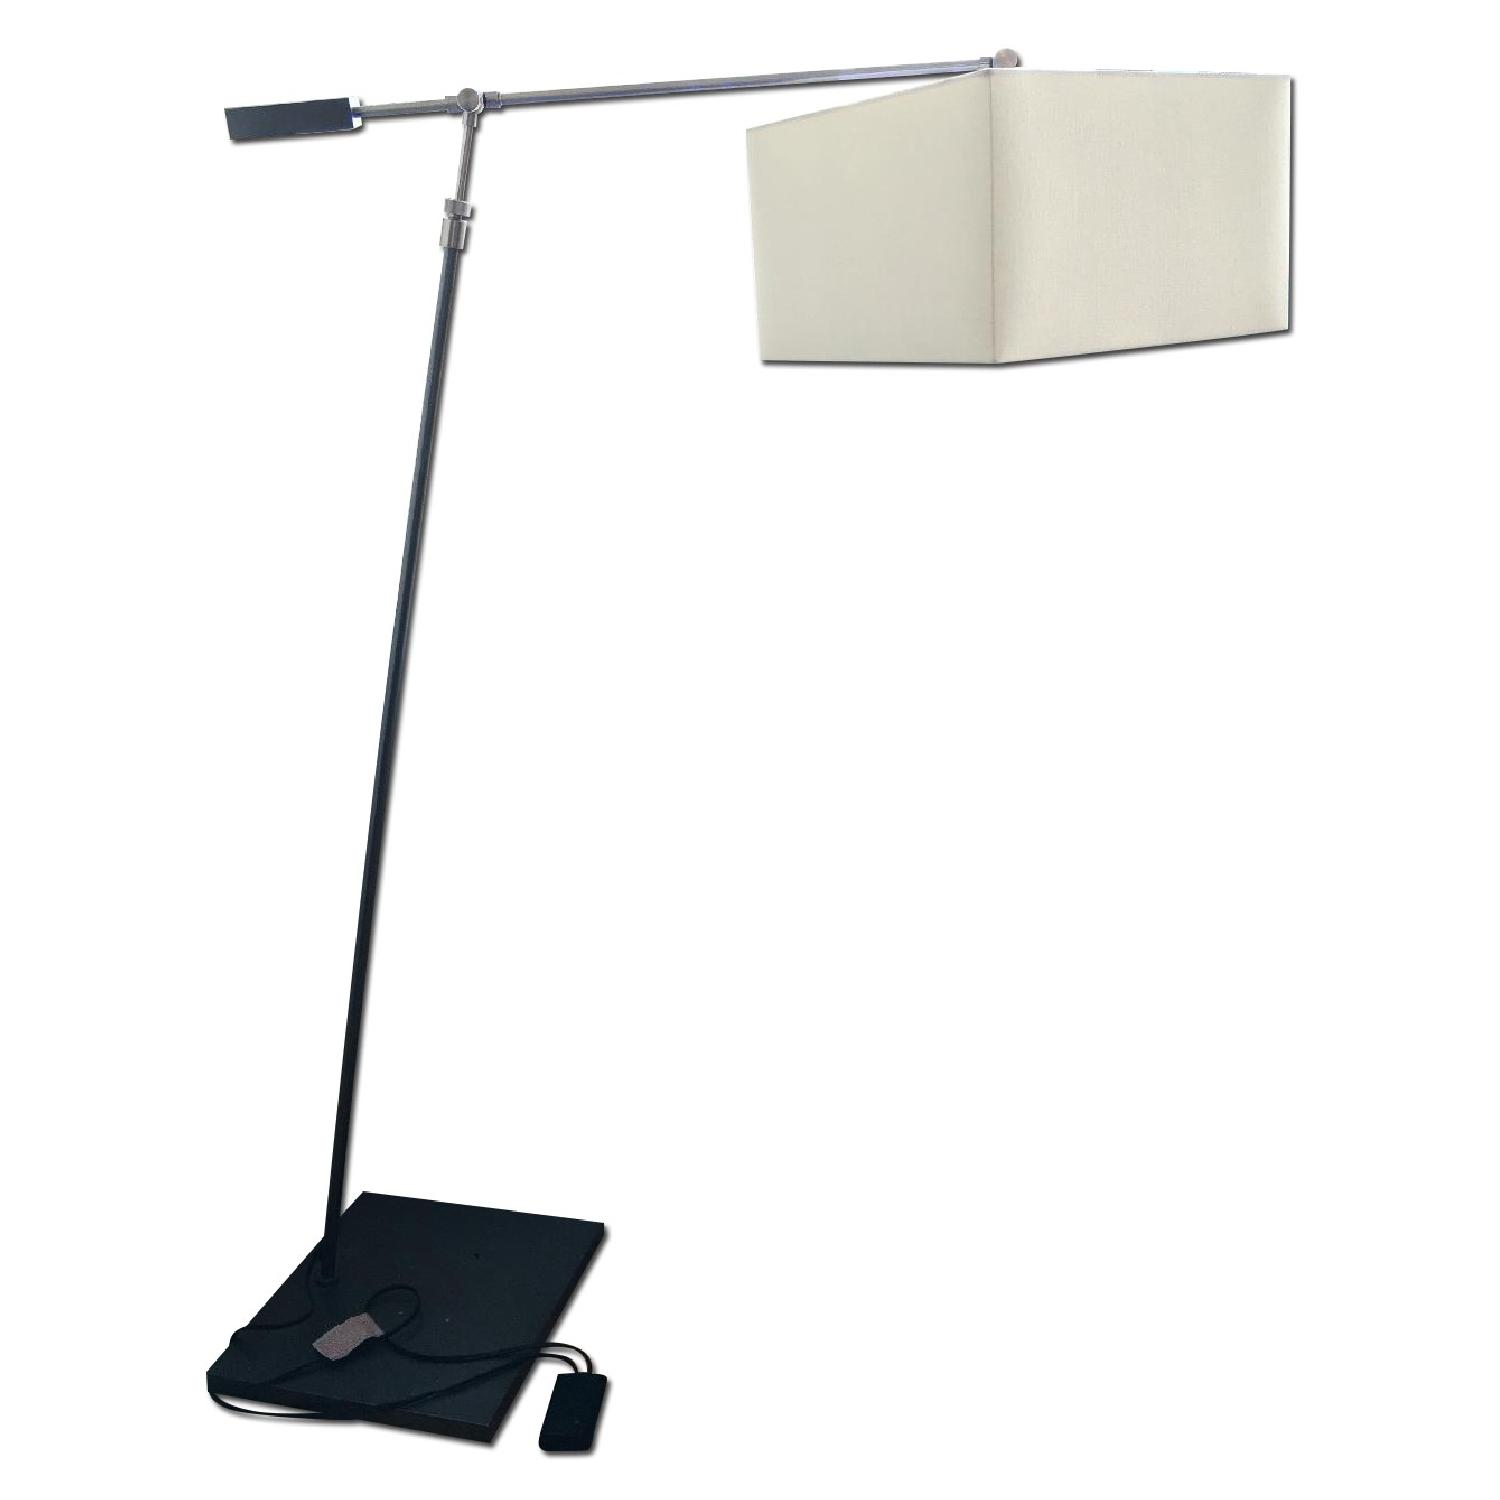 cb2 luxe floor lamp aptdeco With cb2 luxe floor lamp review